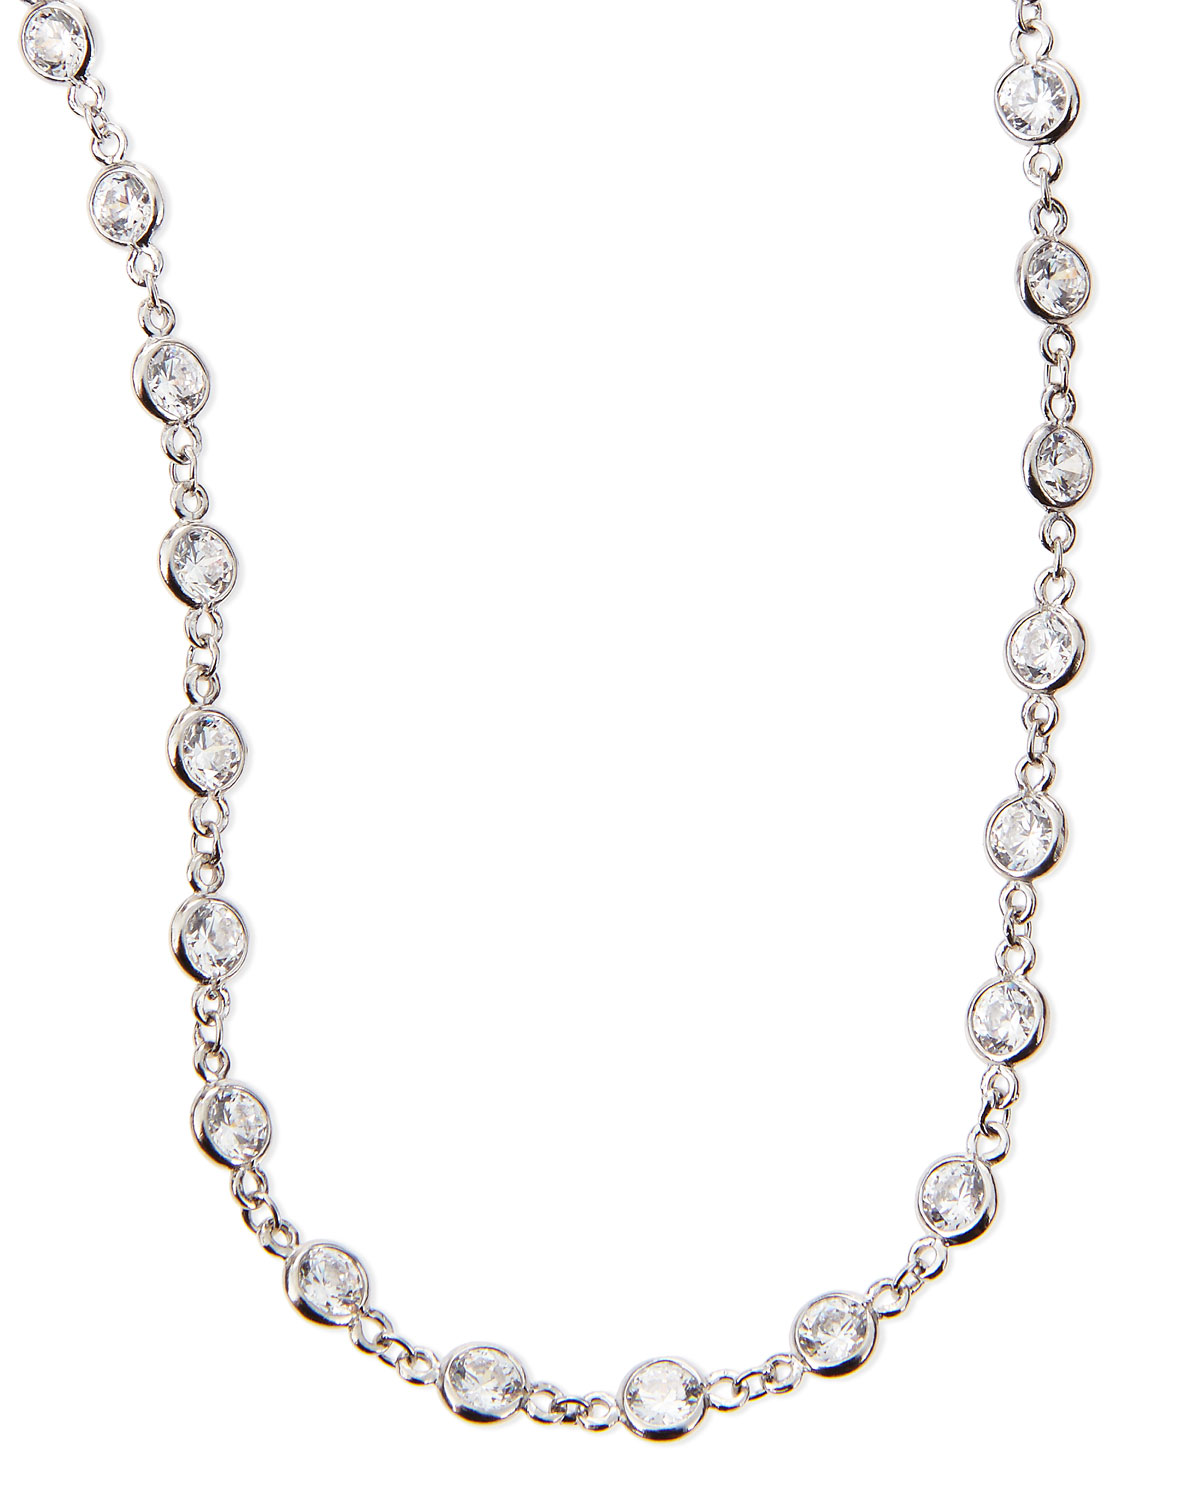 "Fantasia by DeSerio 16.5 TCW Cubic Zirconia By-the-Yard Necklace, 36""L"